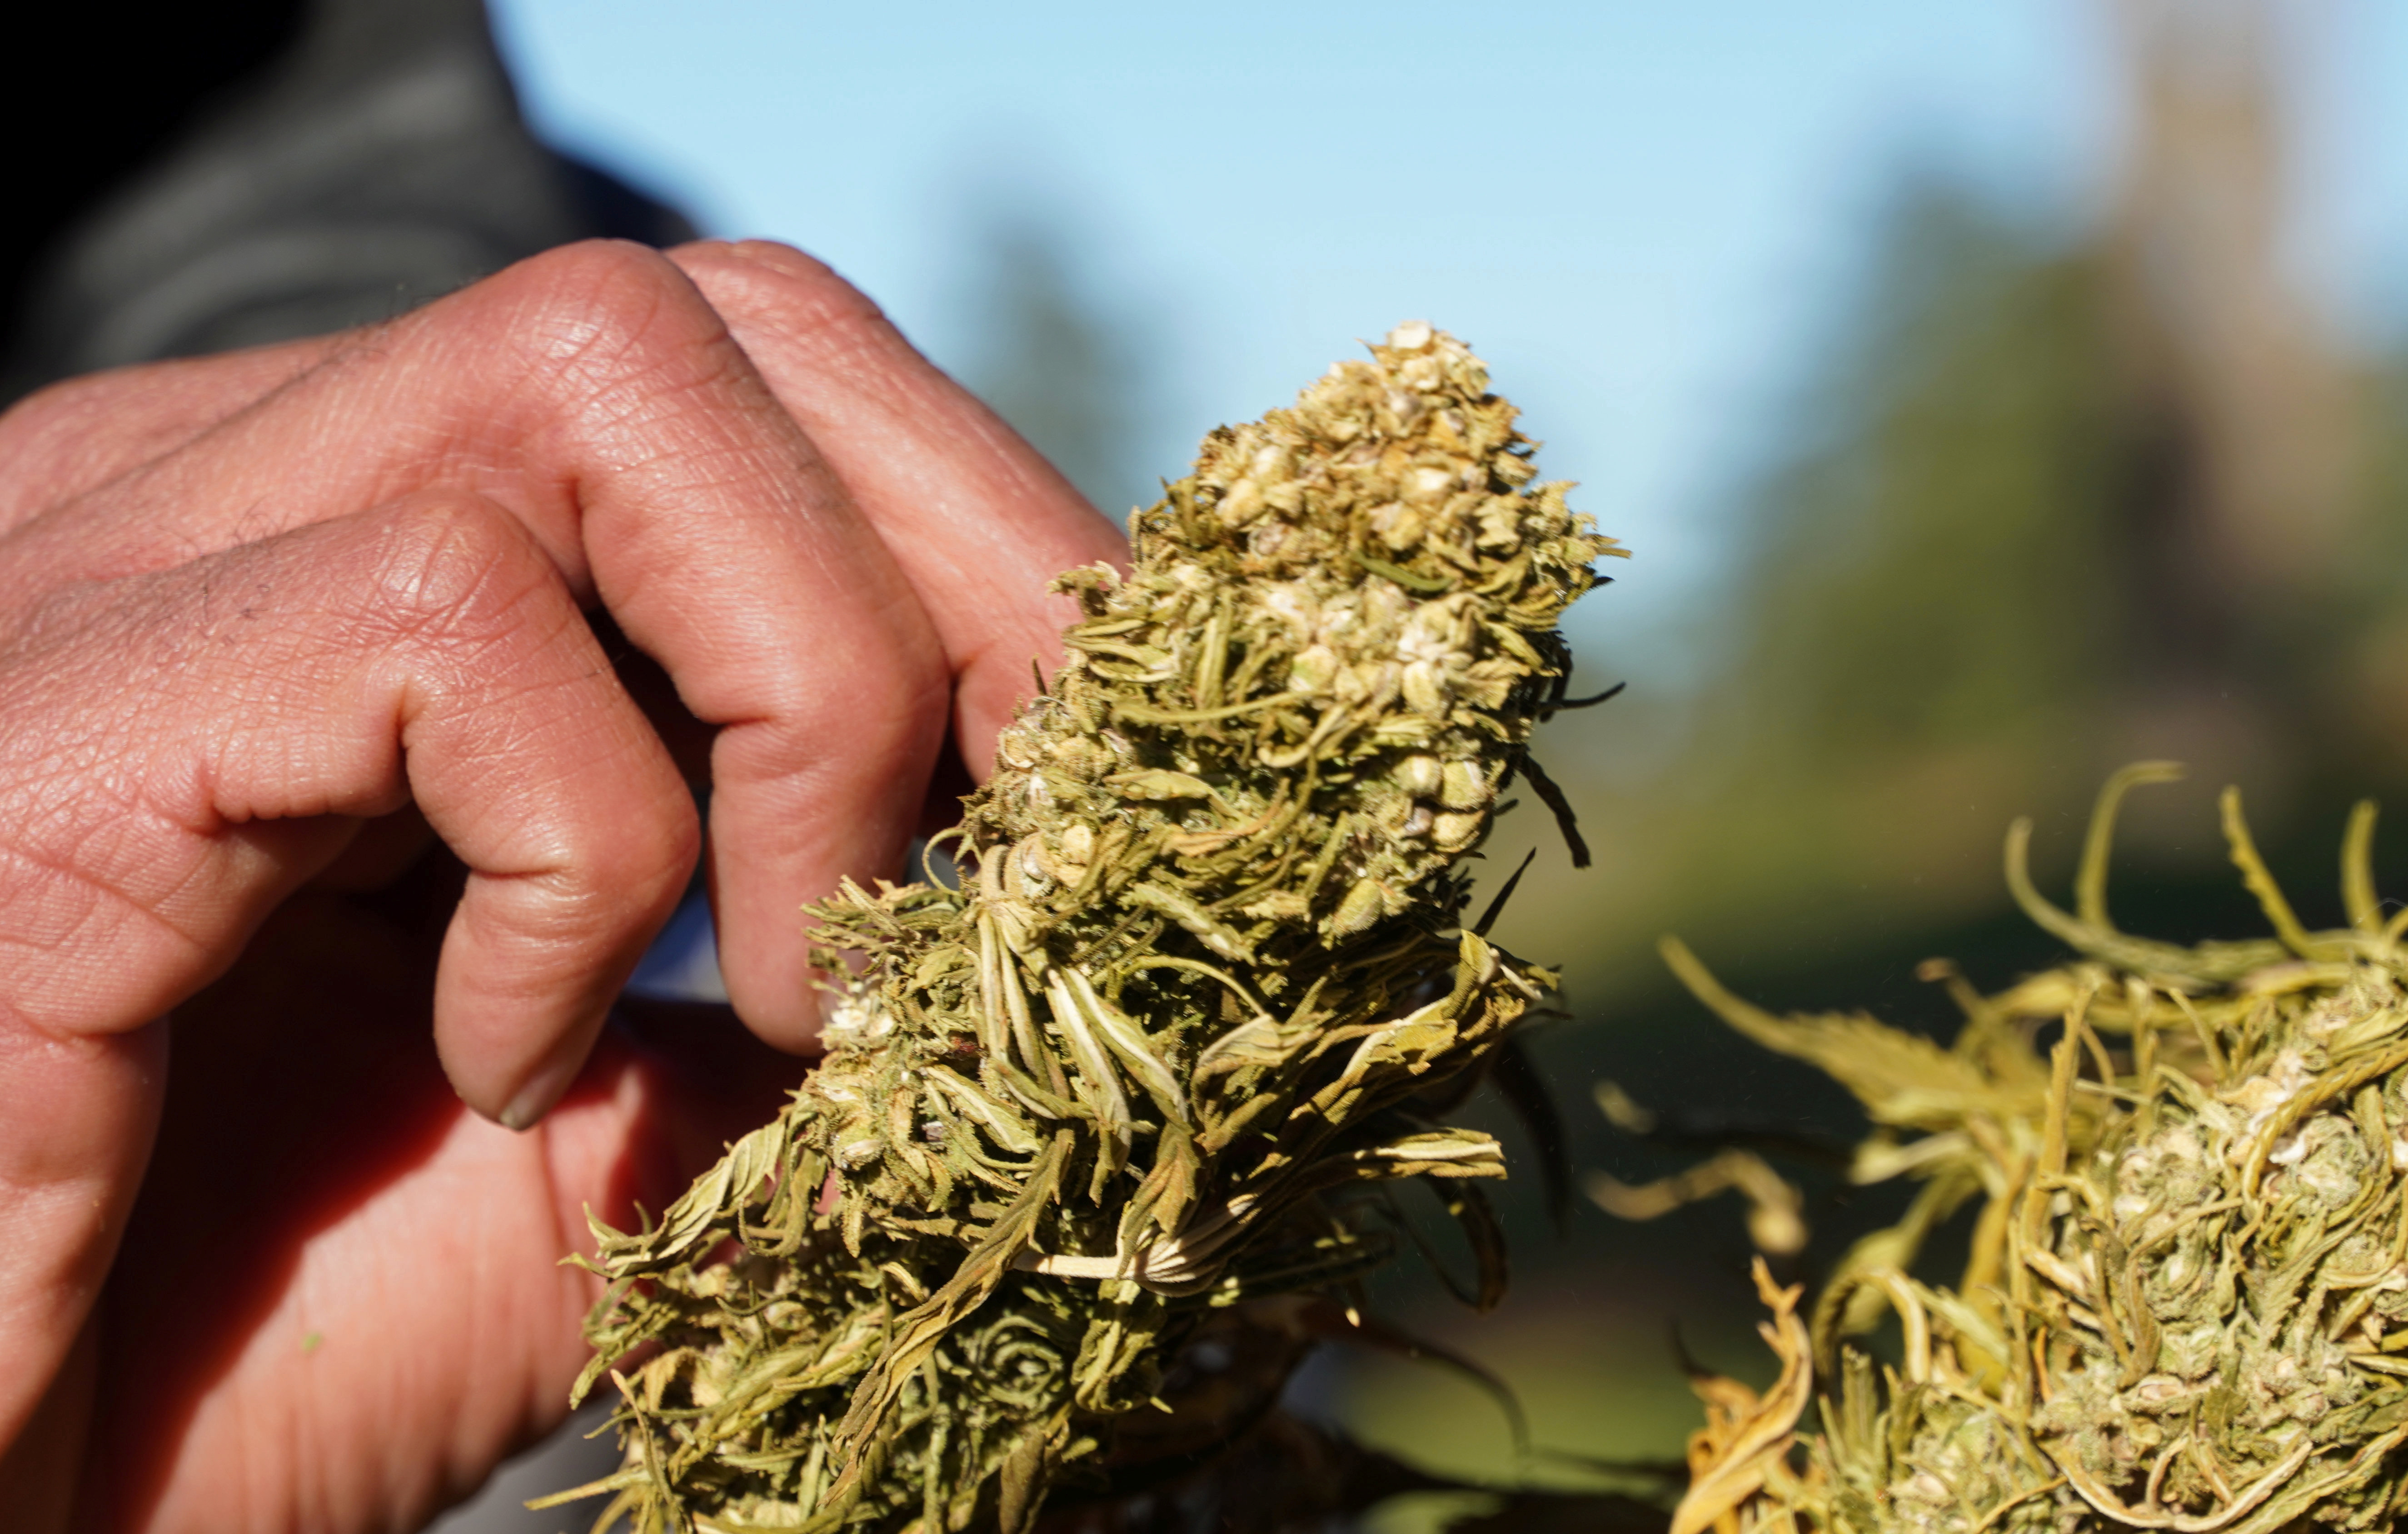 A farmer tends to dried cannabis bundle in Ketama, in the northern Rif mountains, Morocco March 12, 2021. Picture taken March 12, 2021. REUTERS/Stringer